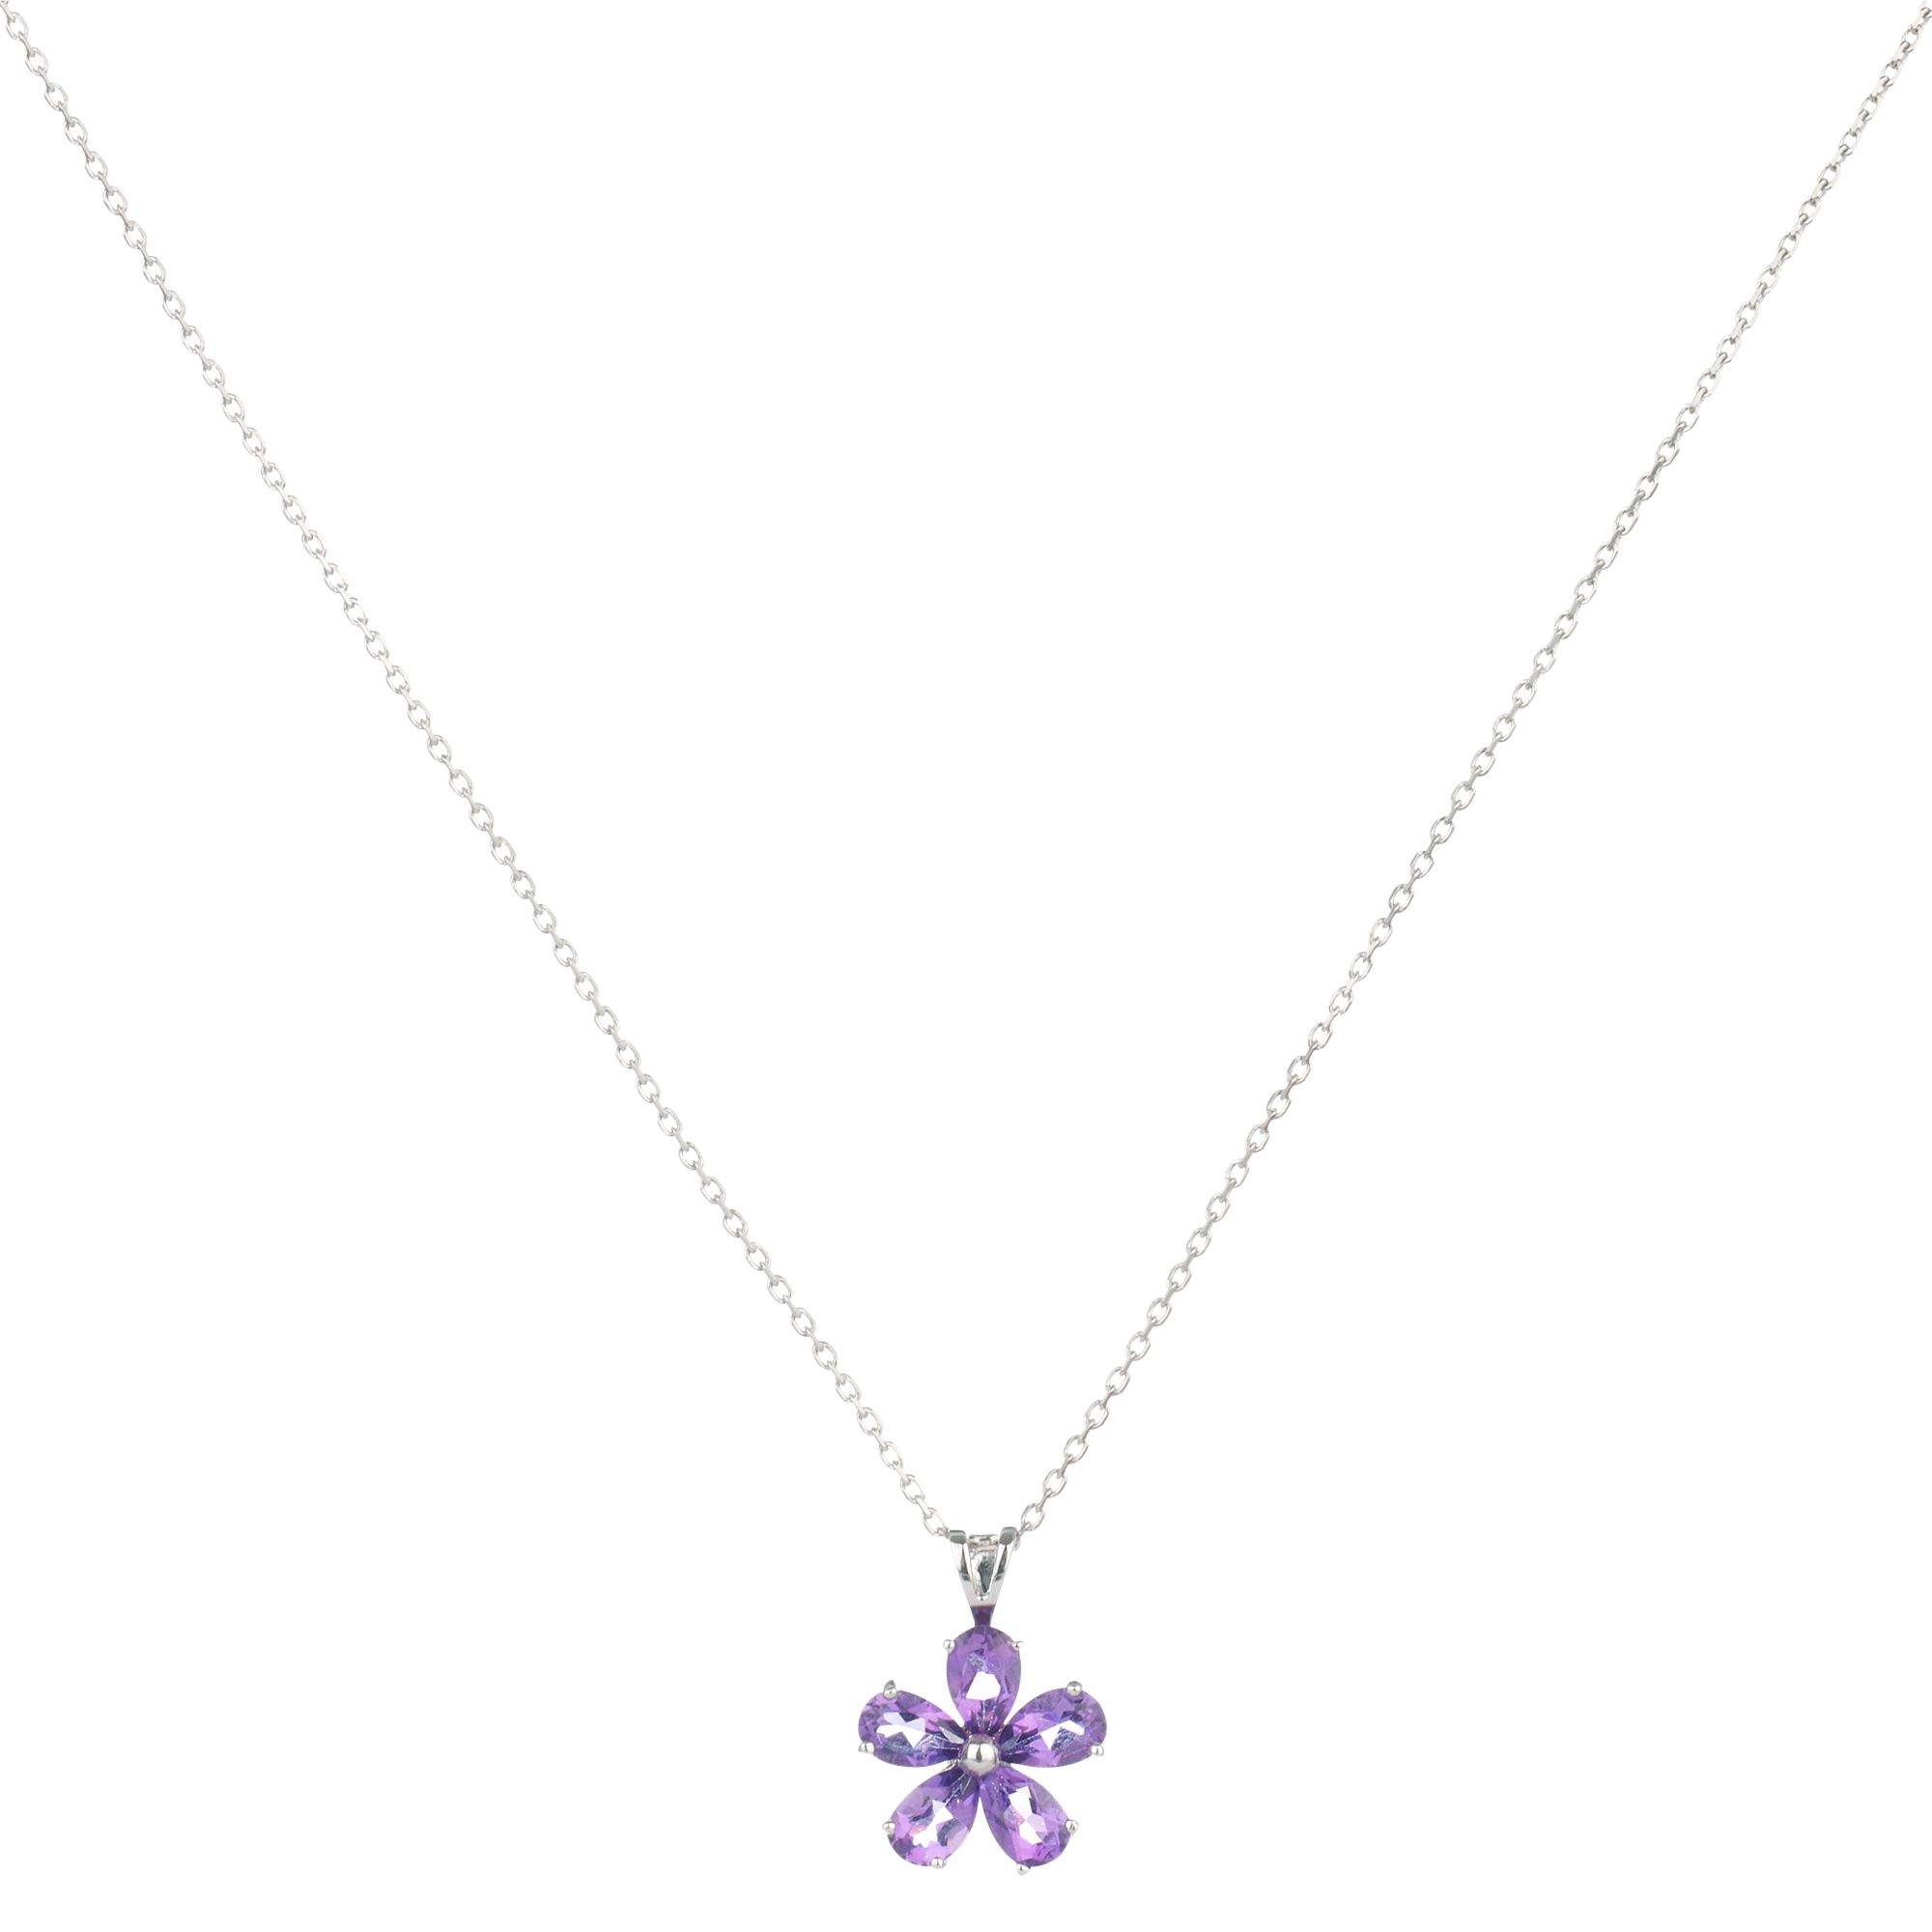 9ct White Gold Amethyst Daisy Flower Pendant Necklace